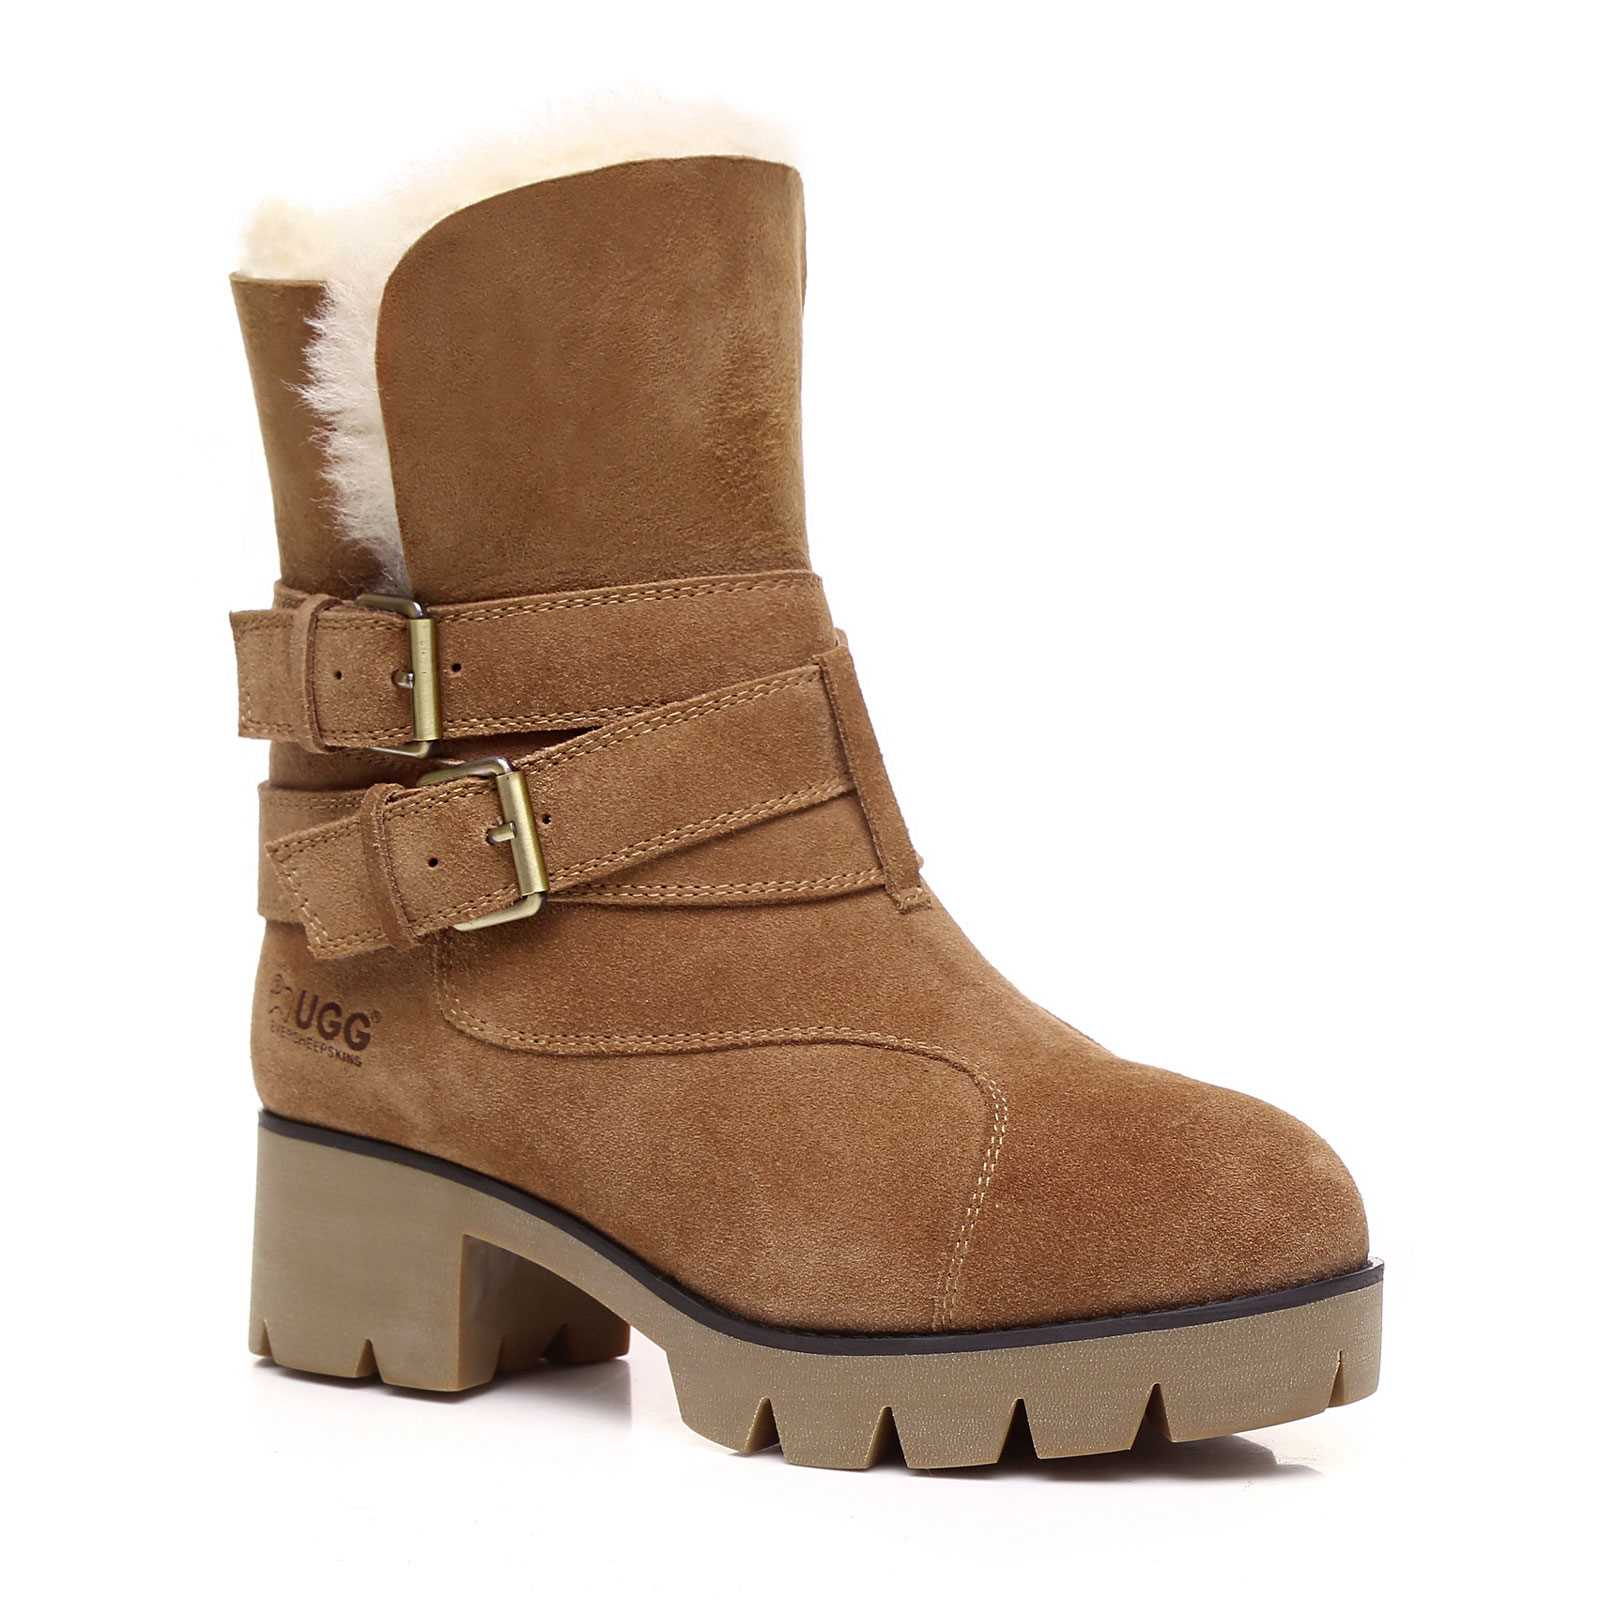 28142b2d7ba Details about UGG Boots Melody Ladies Fashion Boots With Strap Buckle  Australian wool lining